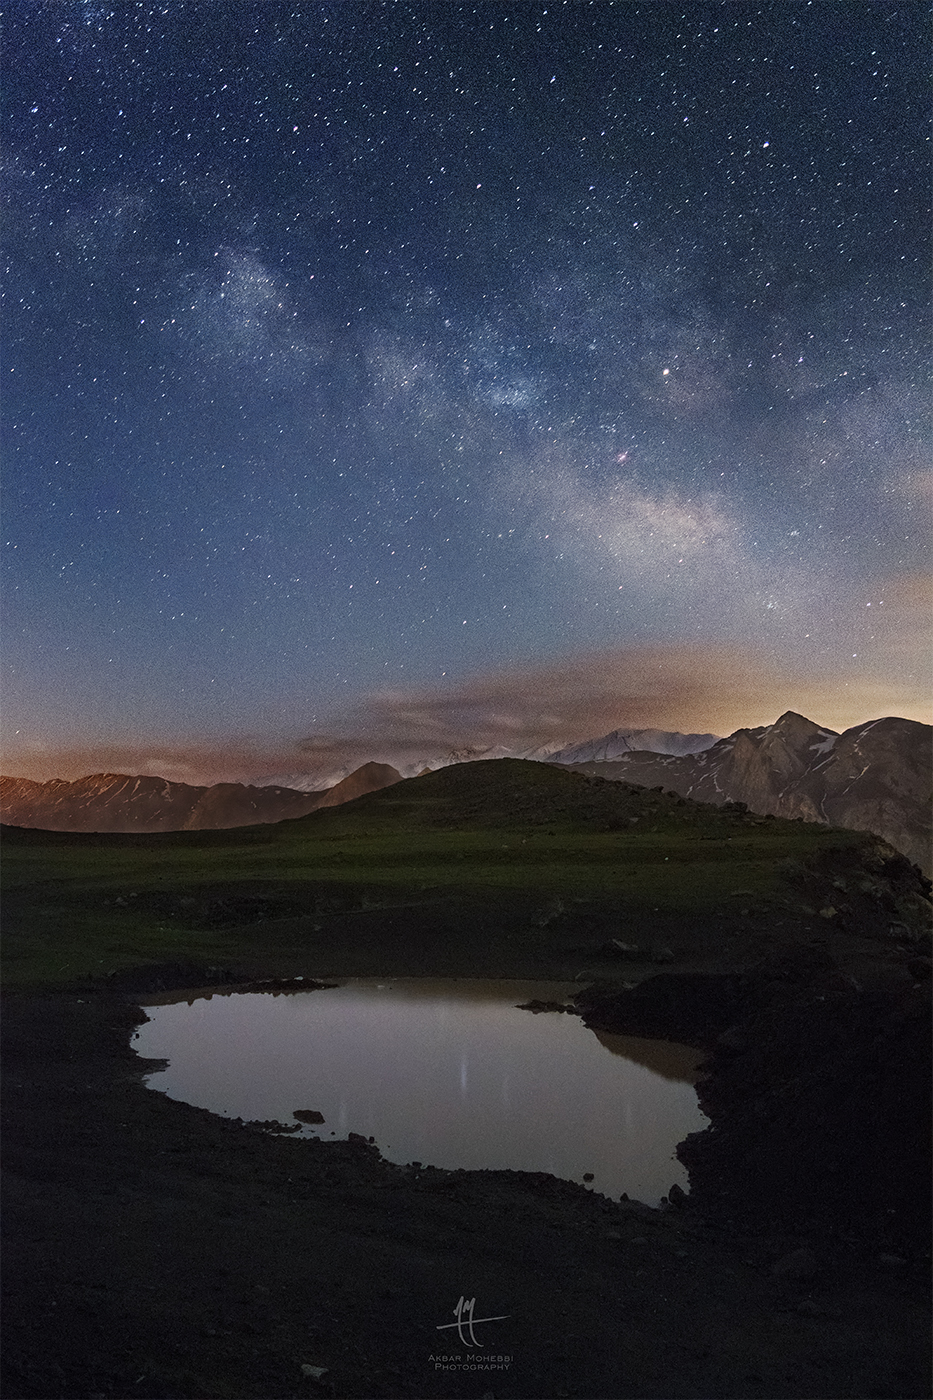 Milky Way and The Song of The Toads